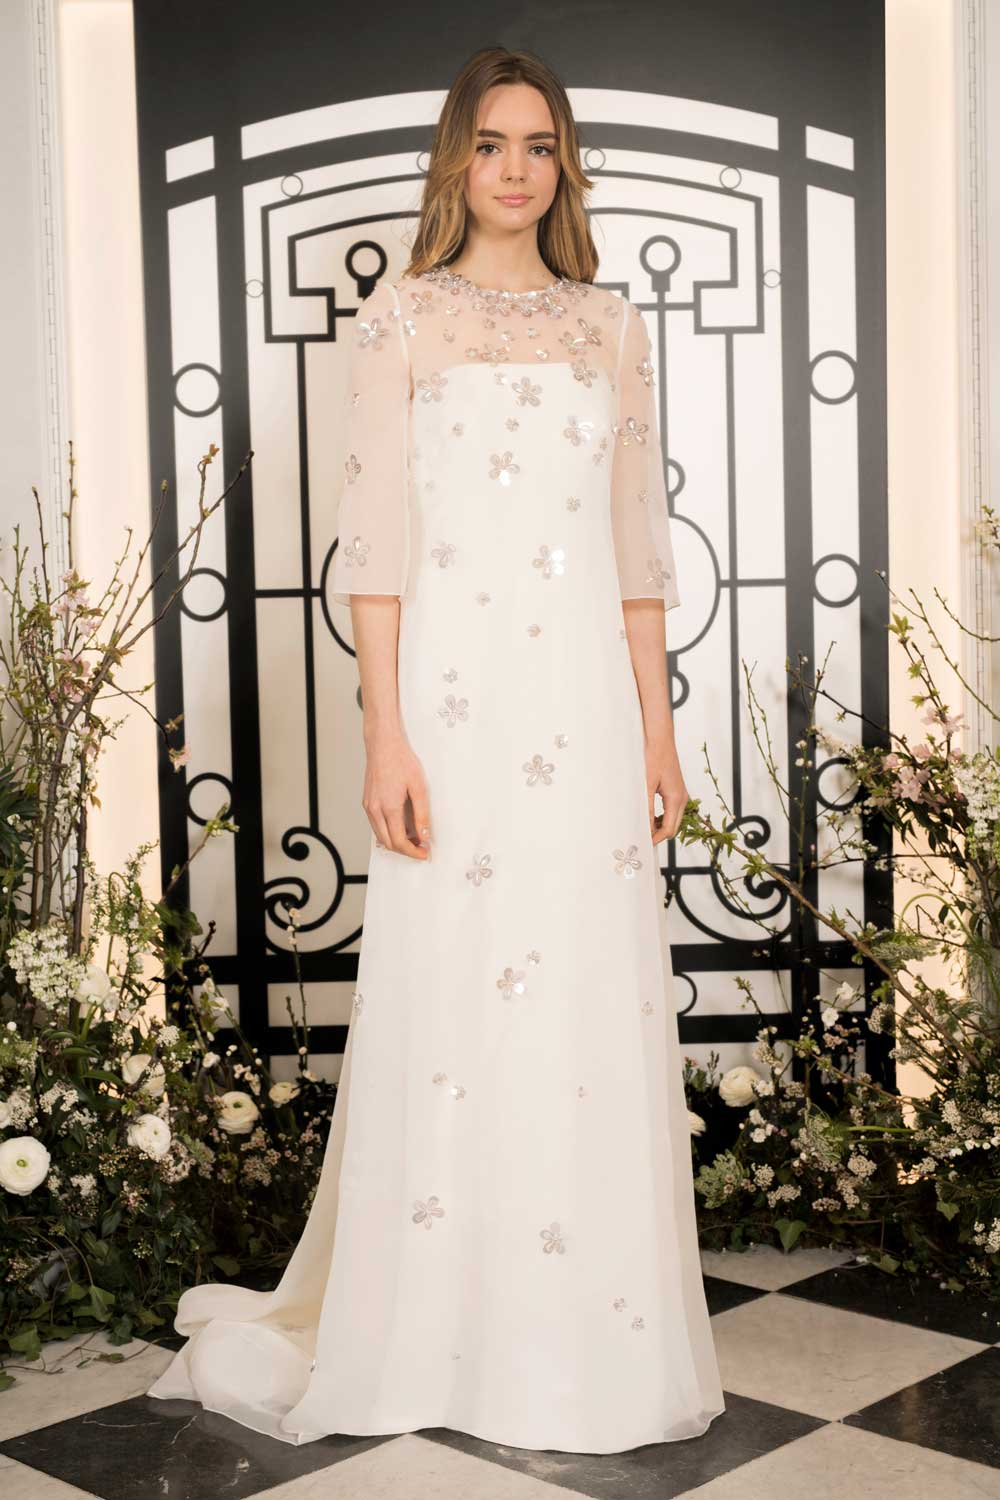 70's Inspired Bridal Gowns by Kenny Packham